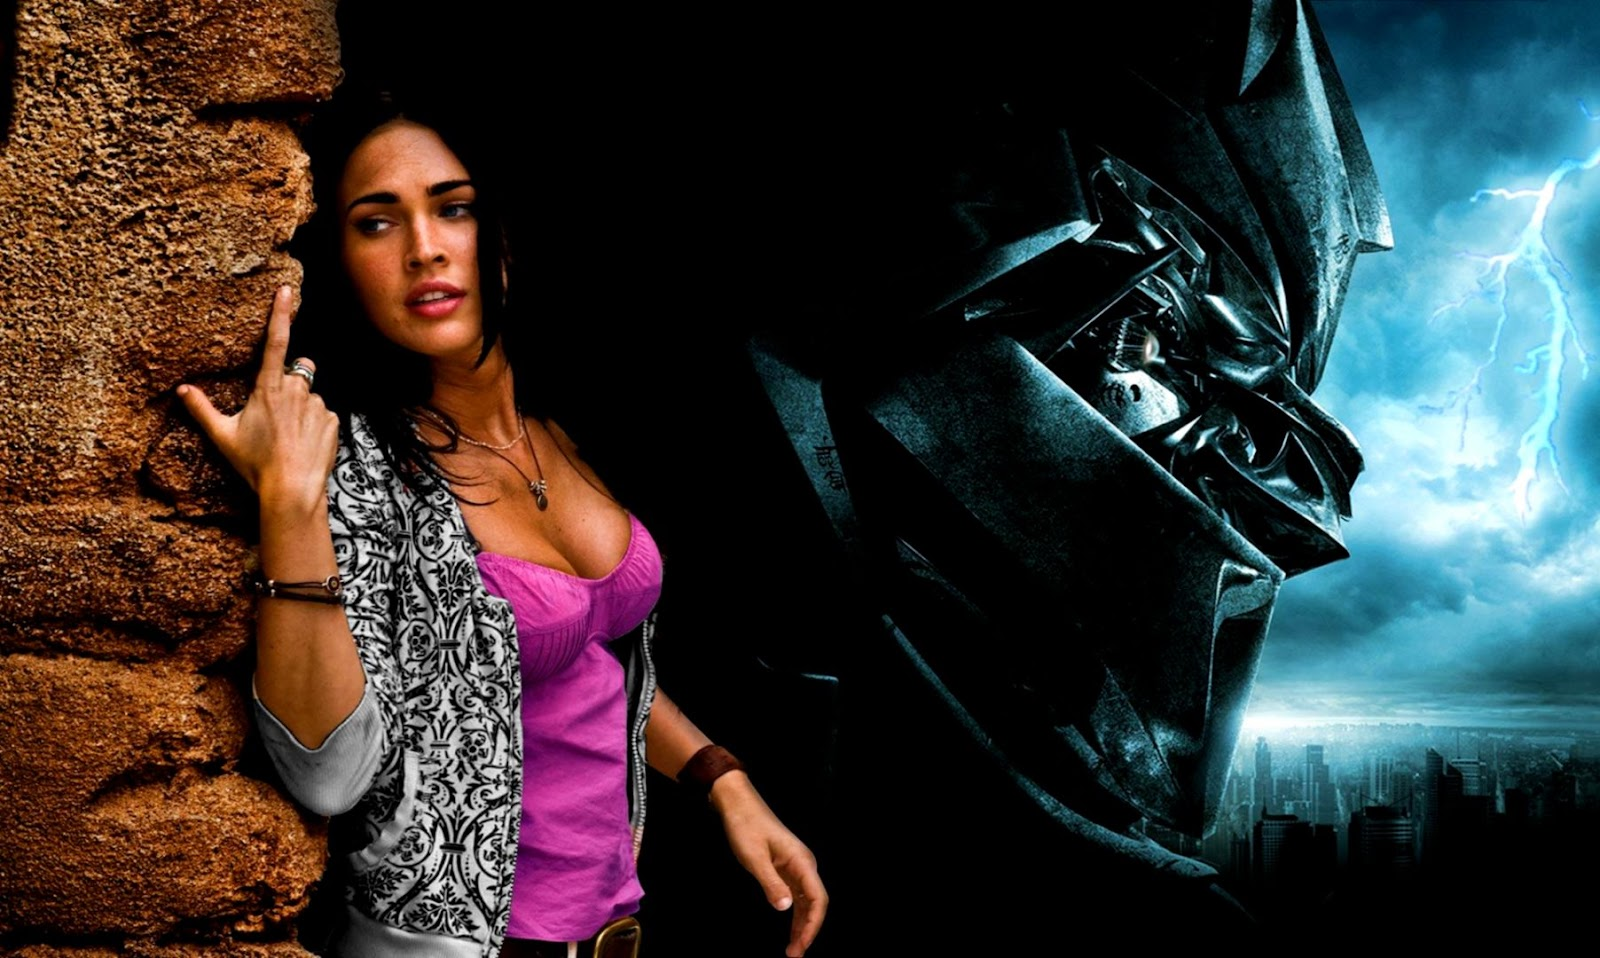 Megan Fox Transformers Movie